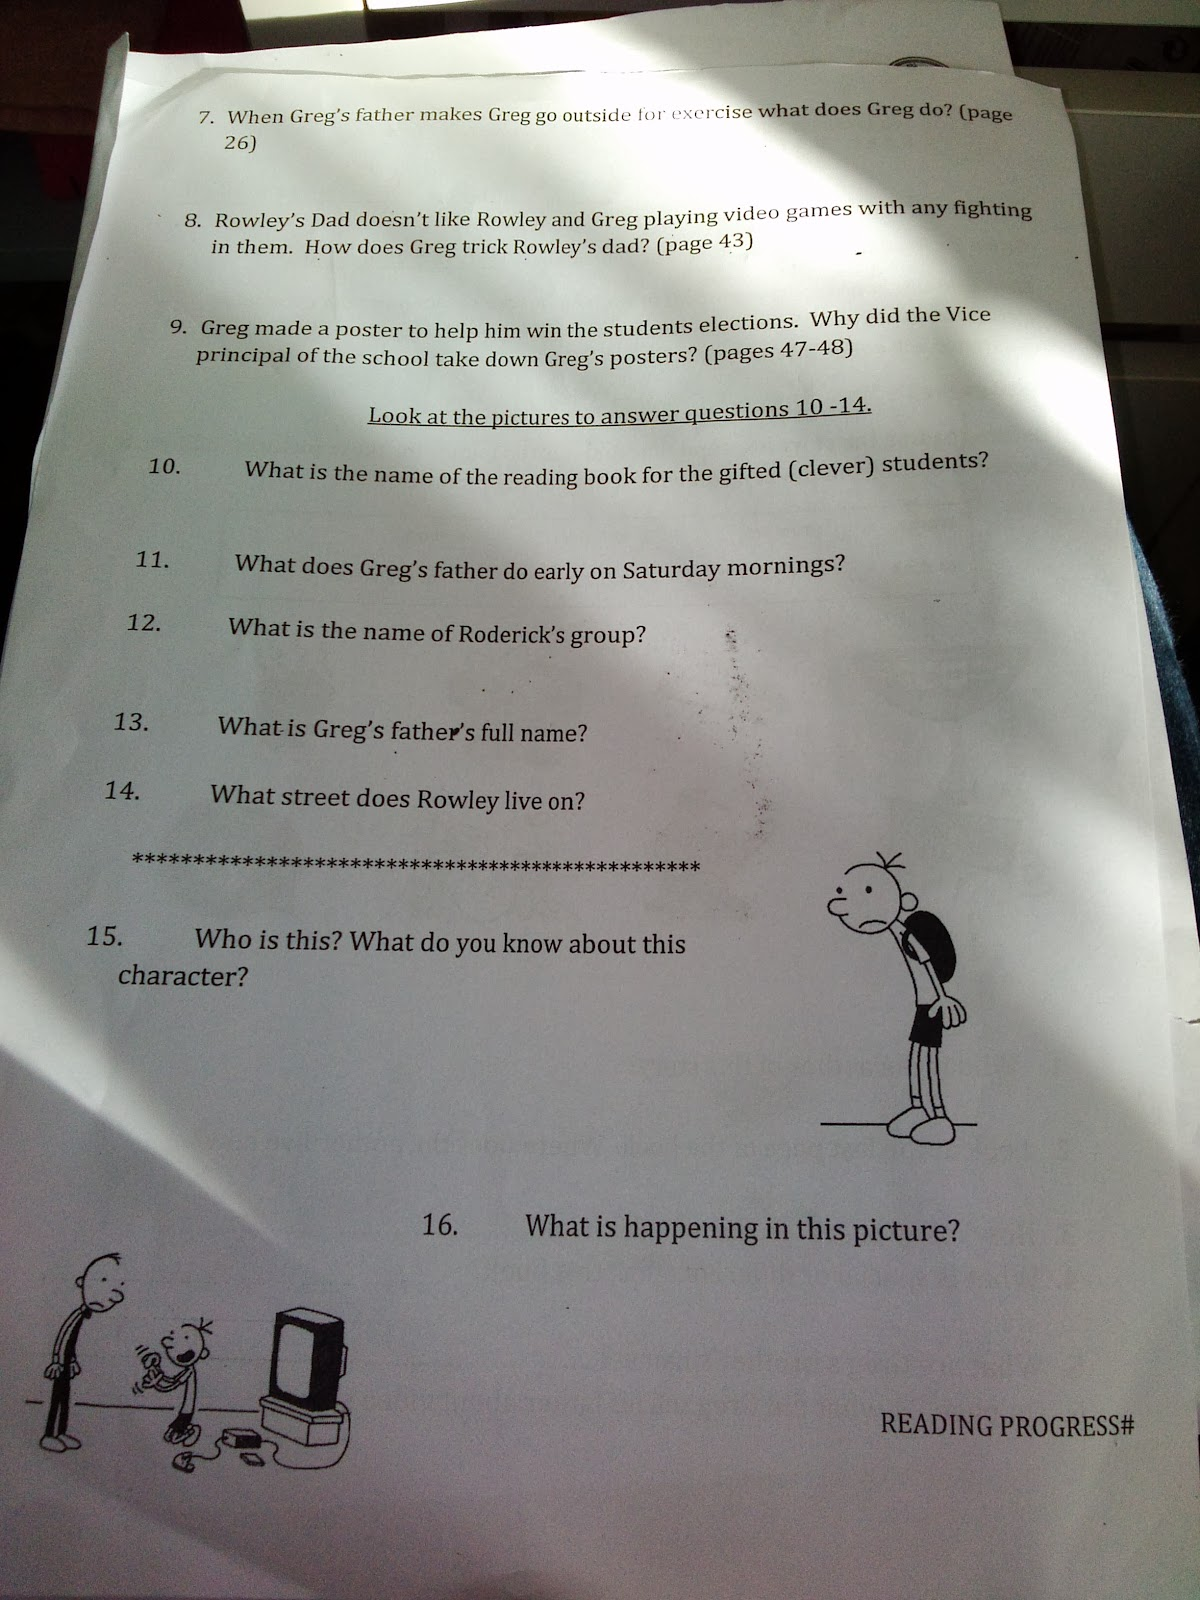 Diary Of A Wimpy Kid Worksheet 1